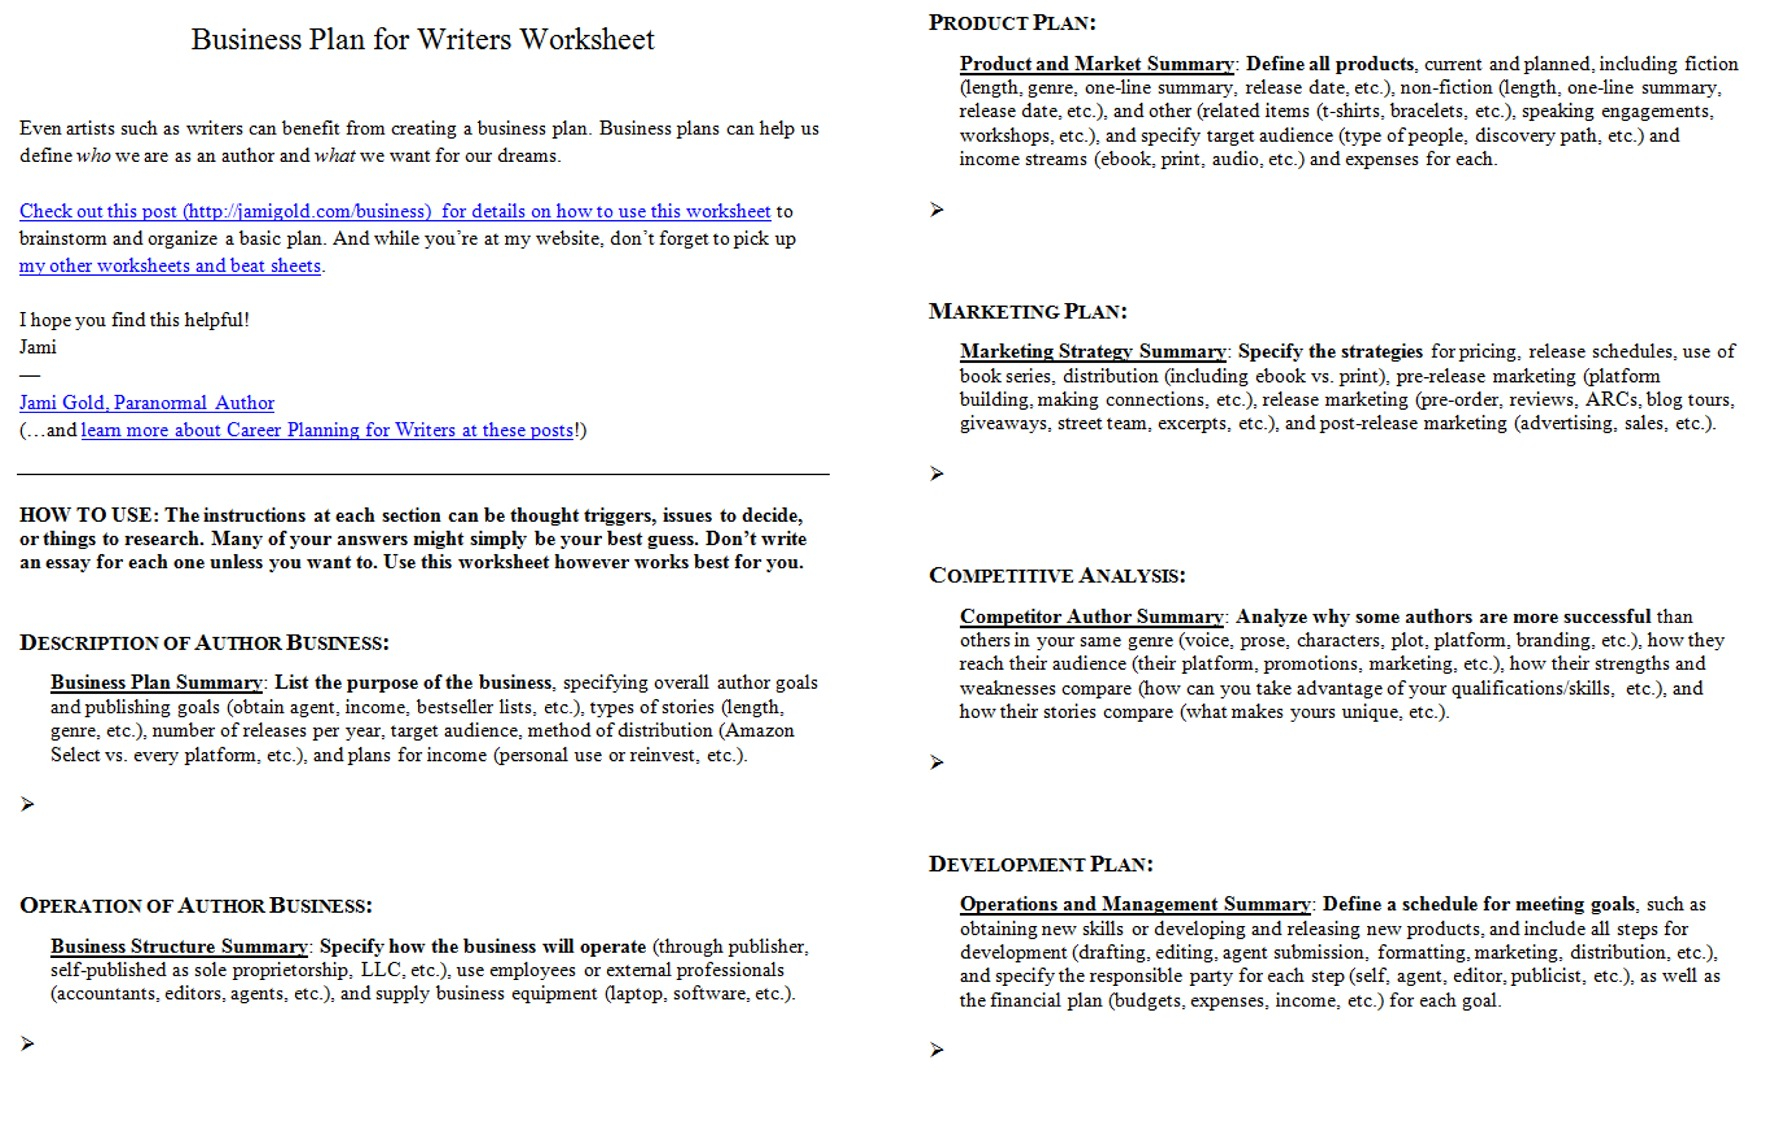 Weirdmailus  Ravishing Worksheets For Writers  Jami Gold Paranormal Author With Goodlooking Screen Shot Of Both Pages Of The Business Plan For Writers Worksheet With Breathtaking Rice Worksheet Also Pdf English Grammar Worksheets In Addition Participle Worksheets And Division Worksheets For Th Grade As Well As New Deal Programs Worksheet Answers Additionally Unm Core Curriculum Worksheet From Jamigoldcom With Weirdmailus  Goodlooking Worksheets For Writers  Jami Gold Paranormal Author With Breathtaking Screen Shot Of Both Pages Of The Business Plan For Writers Worksheet And Ravishing Rice Worksheet Also Pdf English Grammar Worksheets In Addition Participle Worksheets From Jamigoldcom